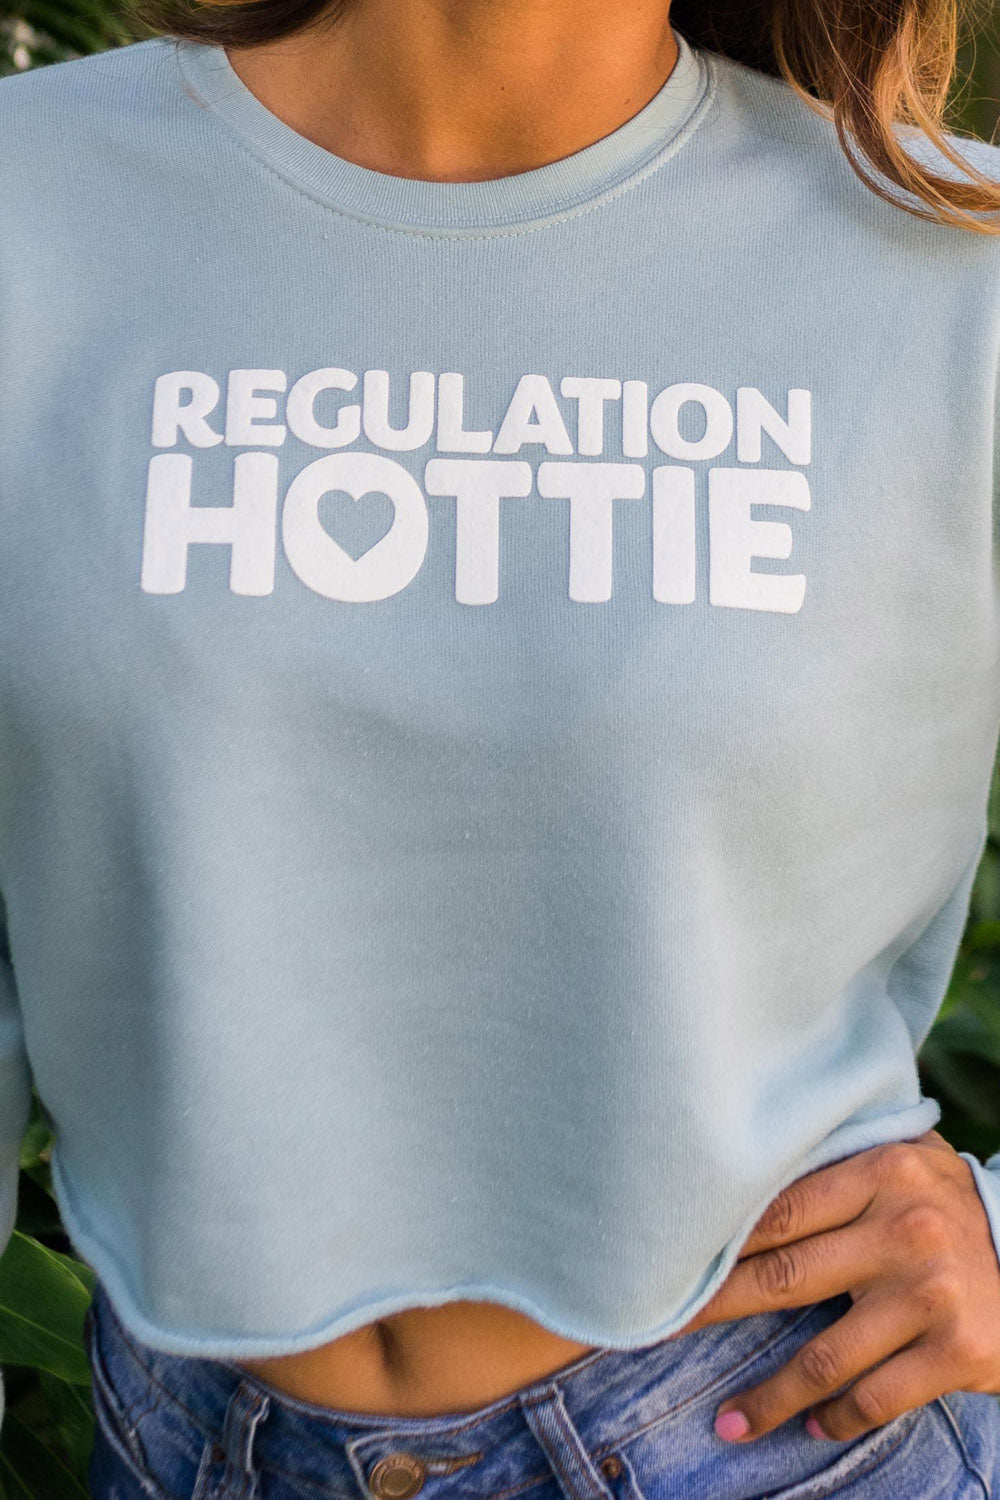 REGULATION HOTTIE CROPPED CREW